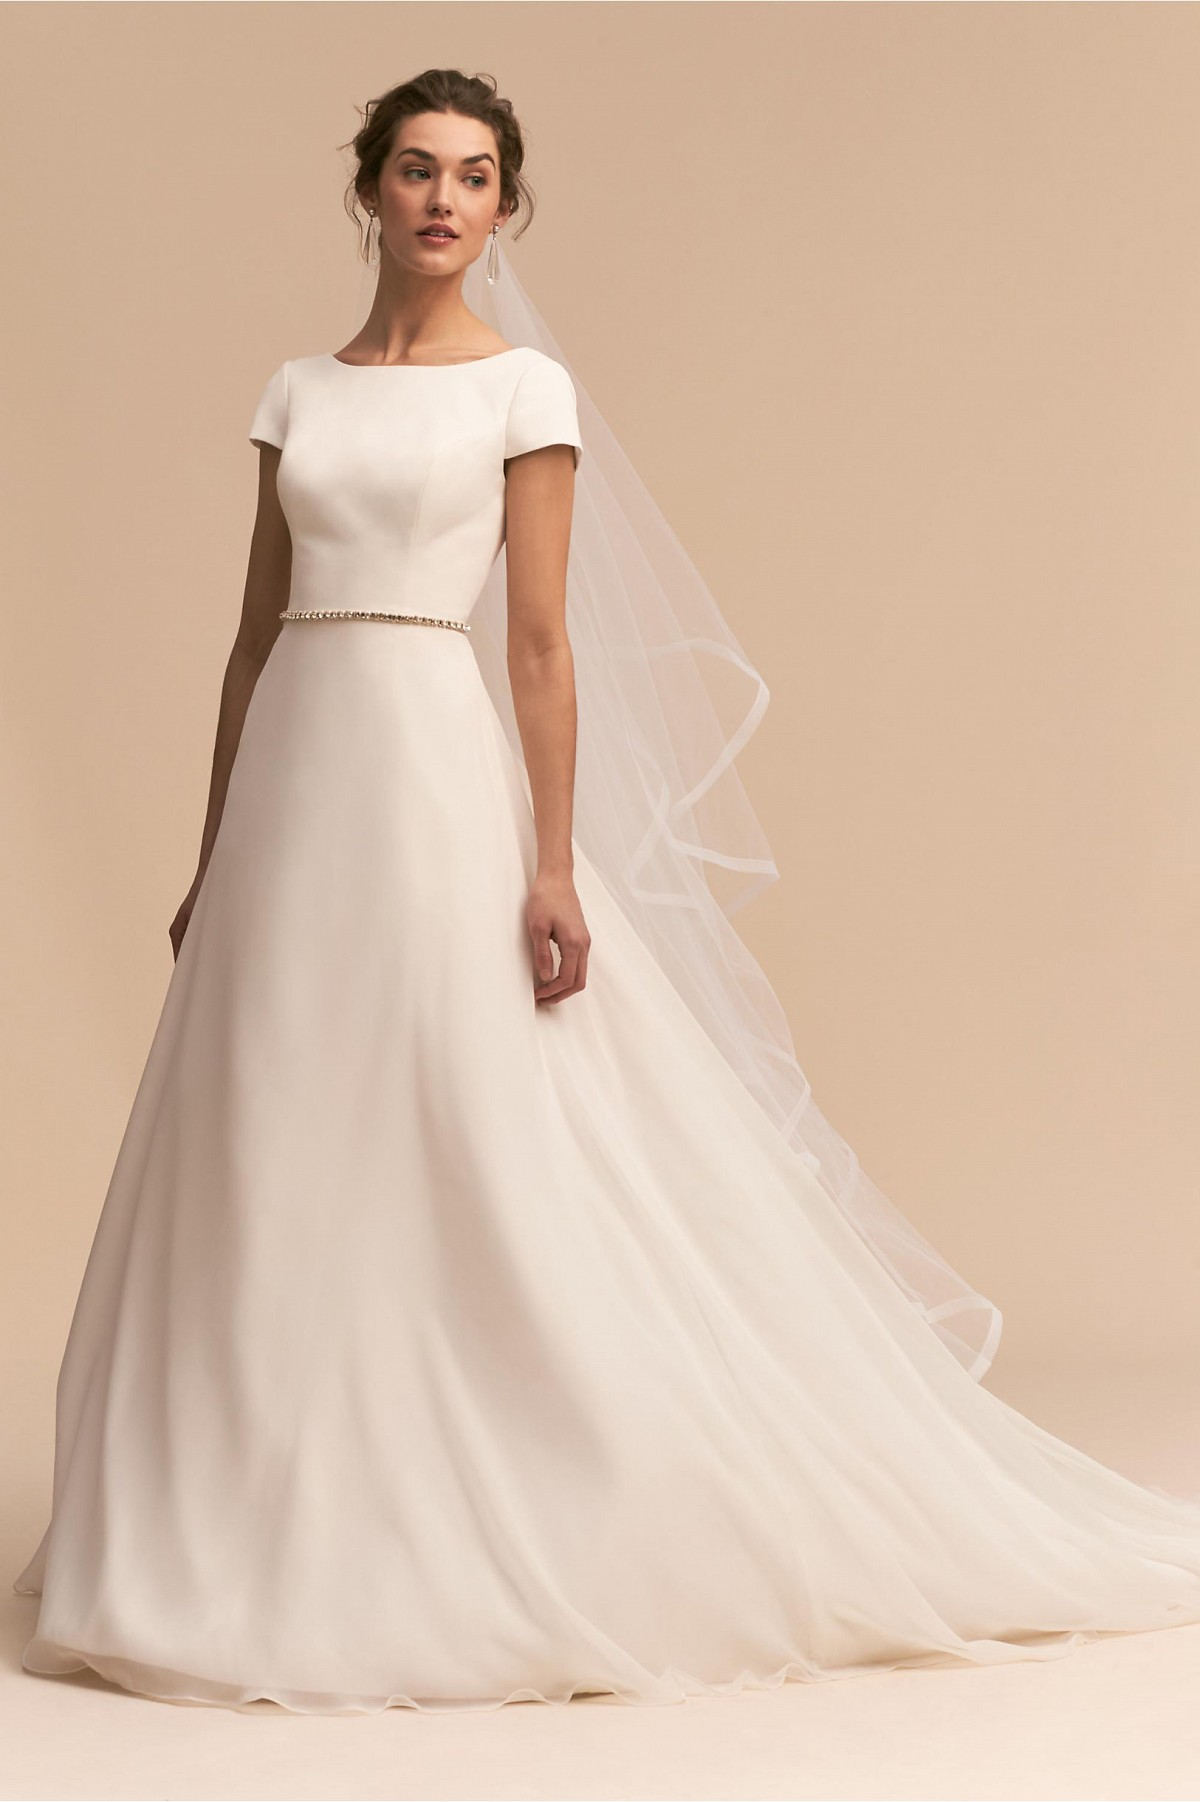 10 Clean, Simple Bridal Gowns inspired by Meghan Markle | Wedding ...